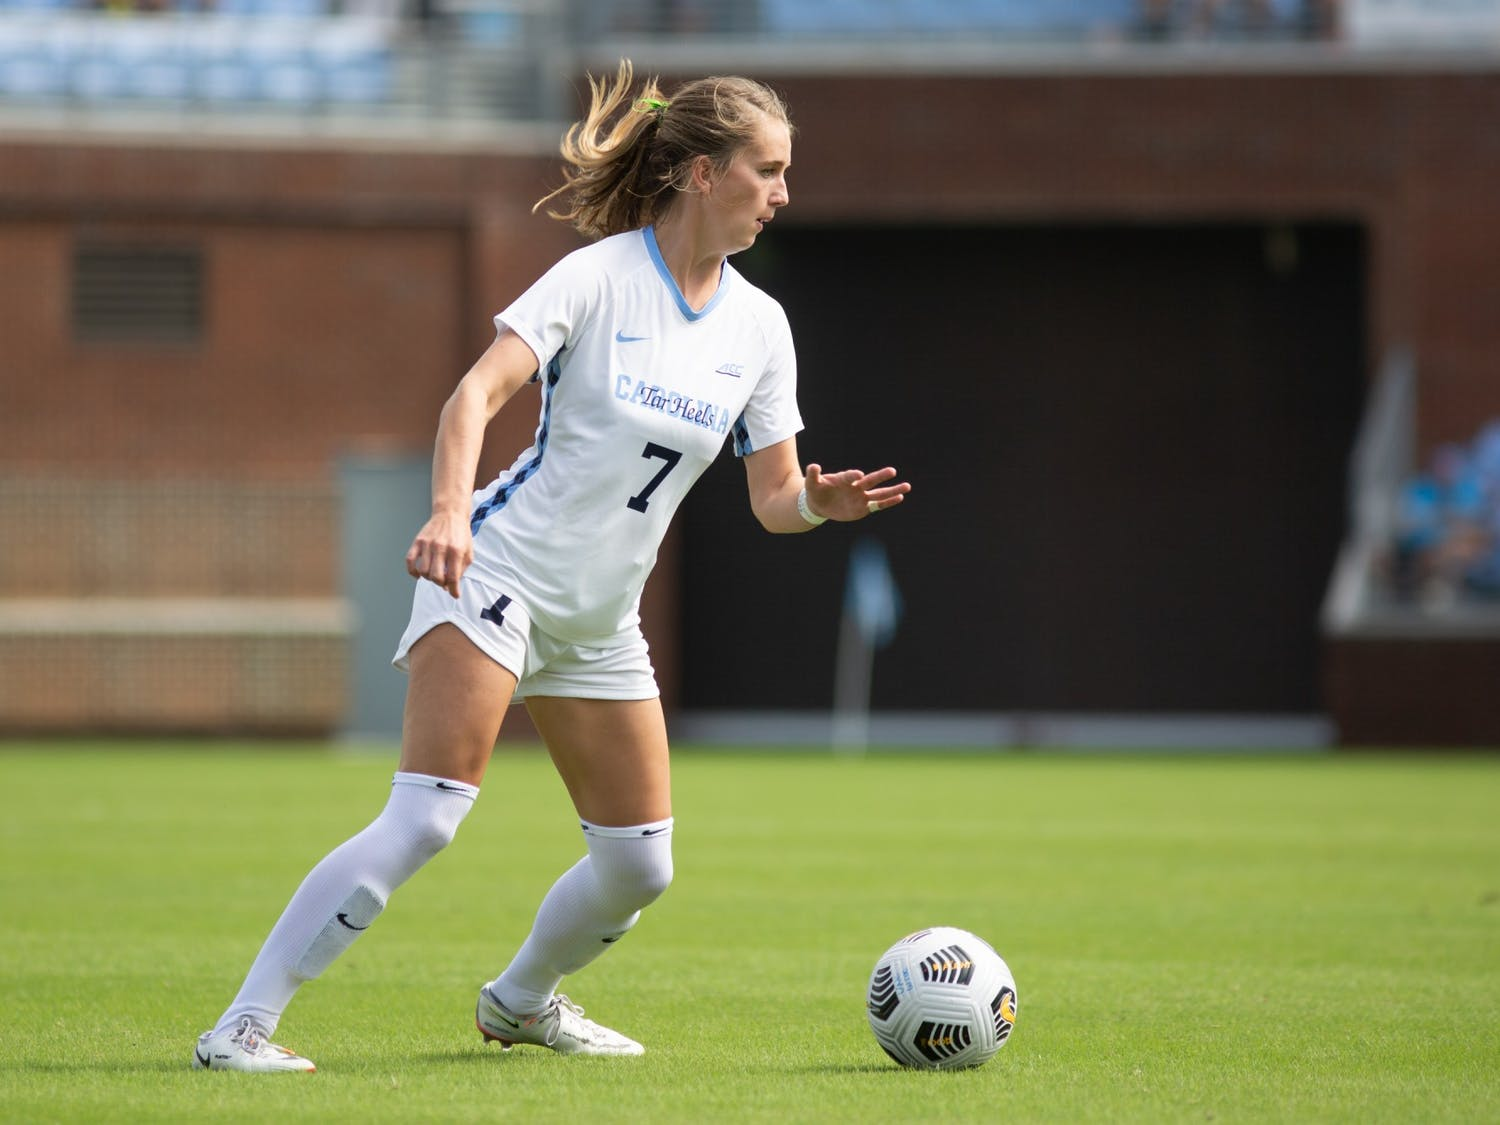 Junior defender Julia Dorsey (7) prepares to kick the ball in a game against the University of Virginia on Oct. 3. The Tar Heels tied with the Cavaliers 0-0.